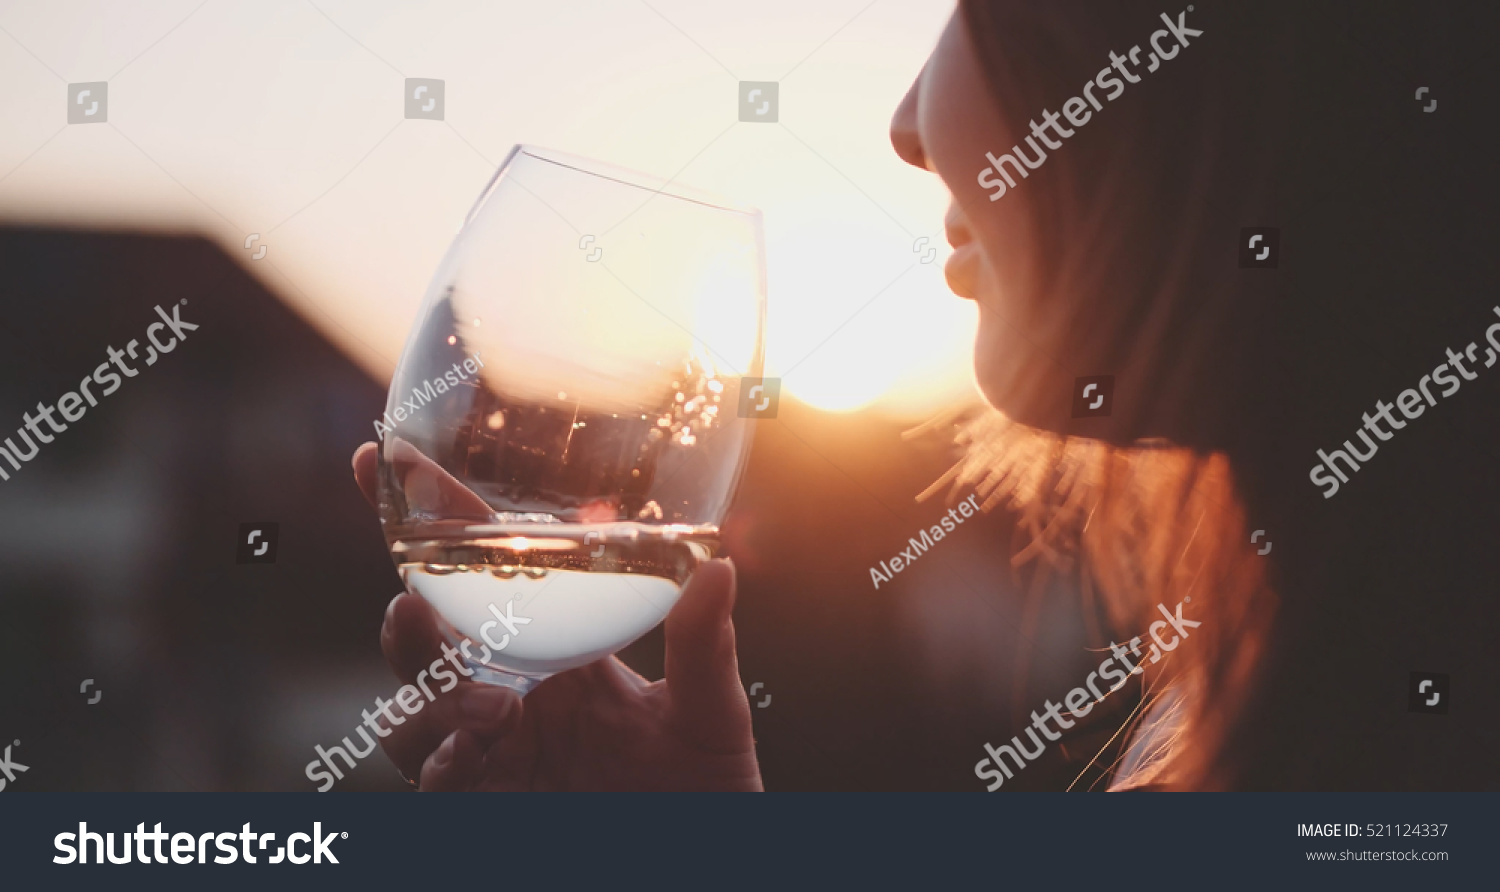 stock-photo-woman-drinking-cooled-white-wine-from-a-glass-at-the-balcony-during-sunset-beautiful-female-521124337.jpg